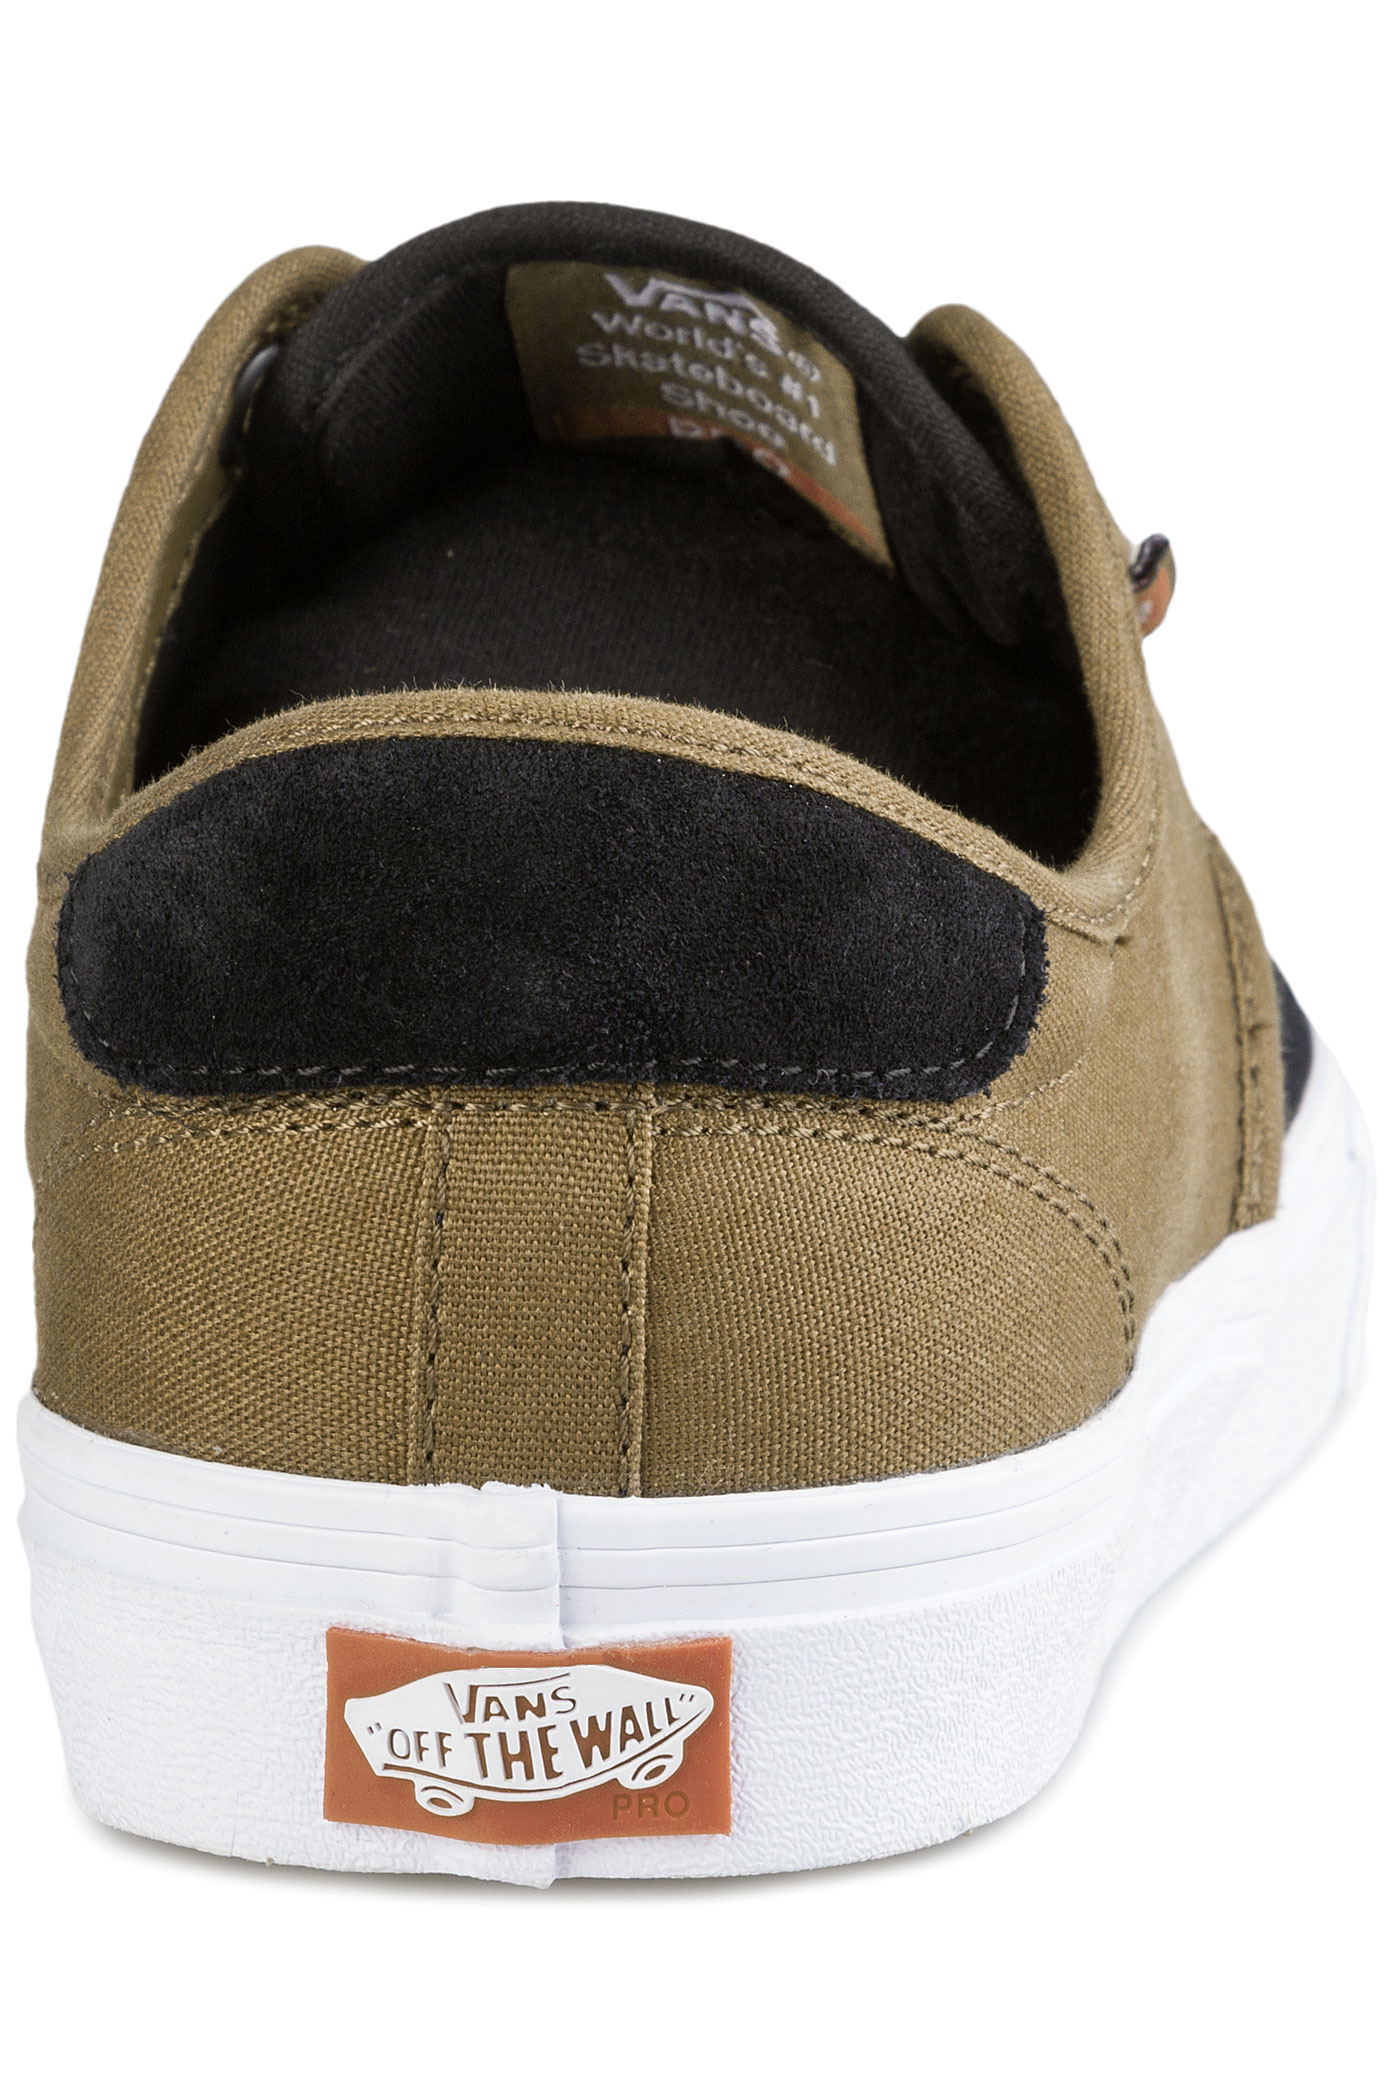 Vans Chima Ferguson Pro Shoes (black teak) buy at skatedeluxe ec17b6796